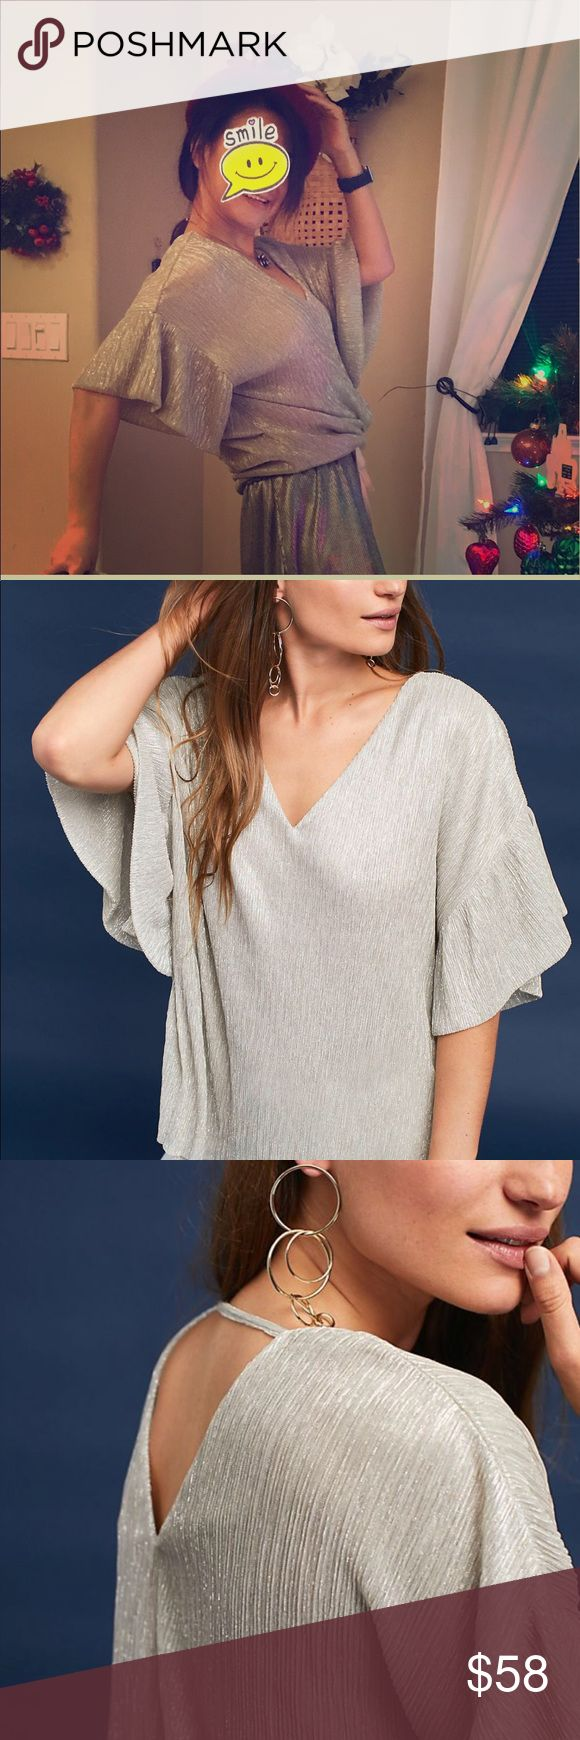 """Anthropologie Women's Ruffled Metallic Top Ruffled sleeves and a subtle shine give this chic tee a contemporary, yet feminine edge.  Polyester, metallic thread Ruffled sleeves Pullover styling Hand wash Imported Dimensions  Regular: 27""""L Petite: 25.25""""L Anthropologie Tops Blouses"""